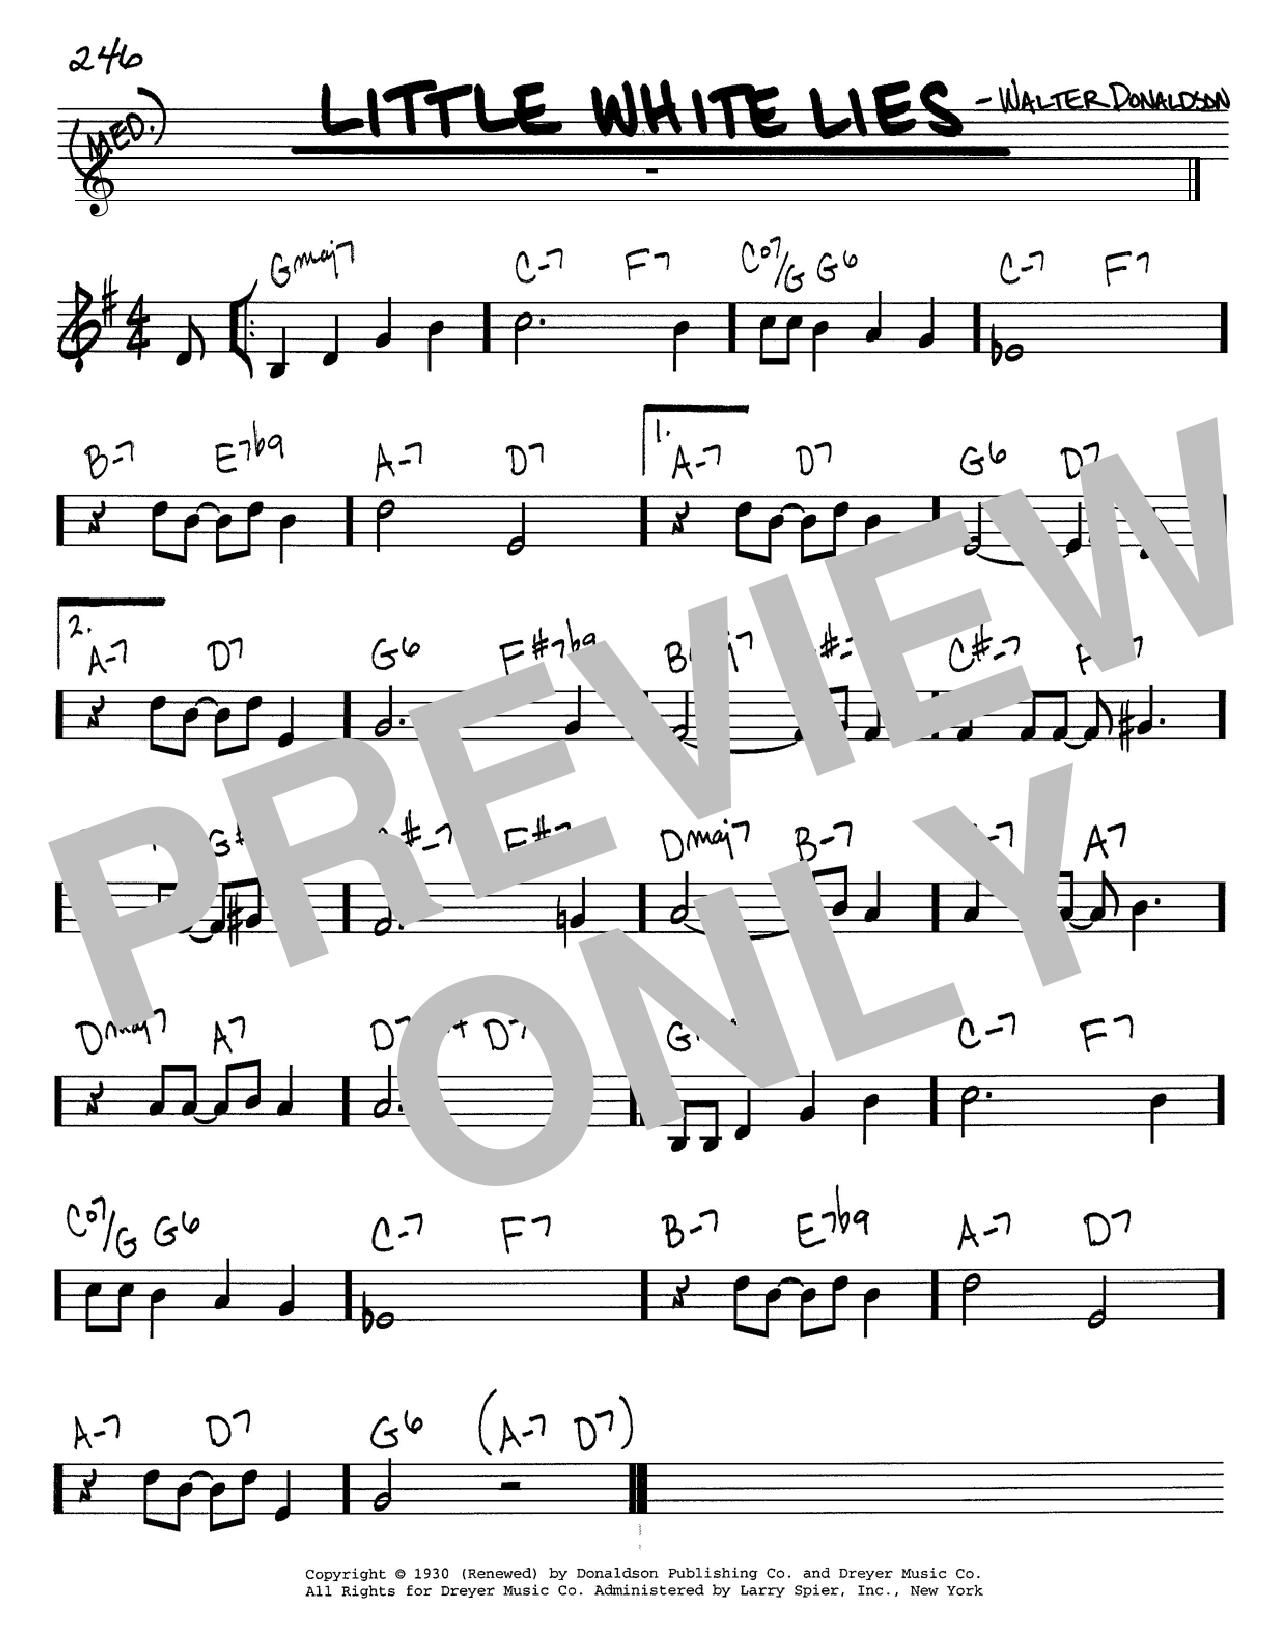 Walter Donaldson Little White Lies sheet music notes and chords. Download Printable PDF.